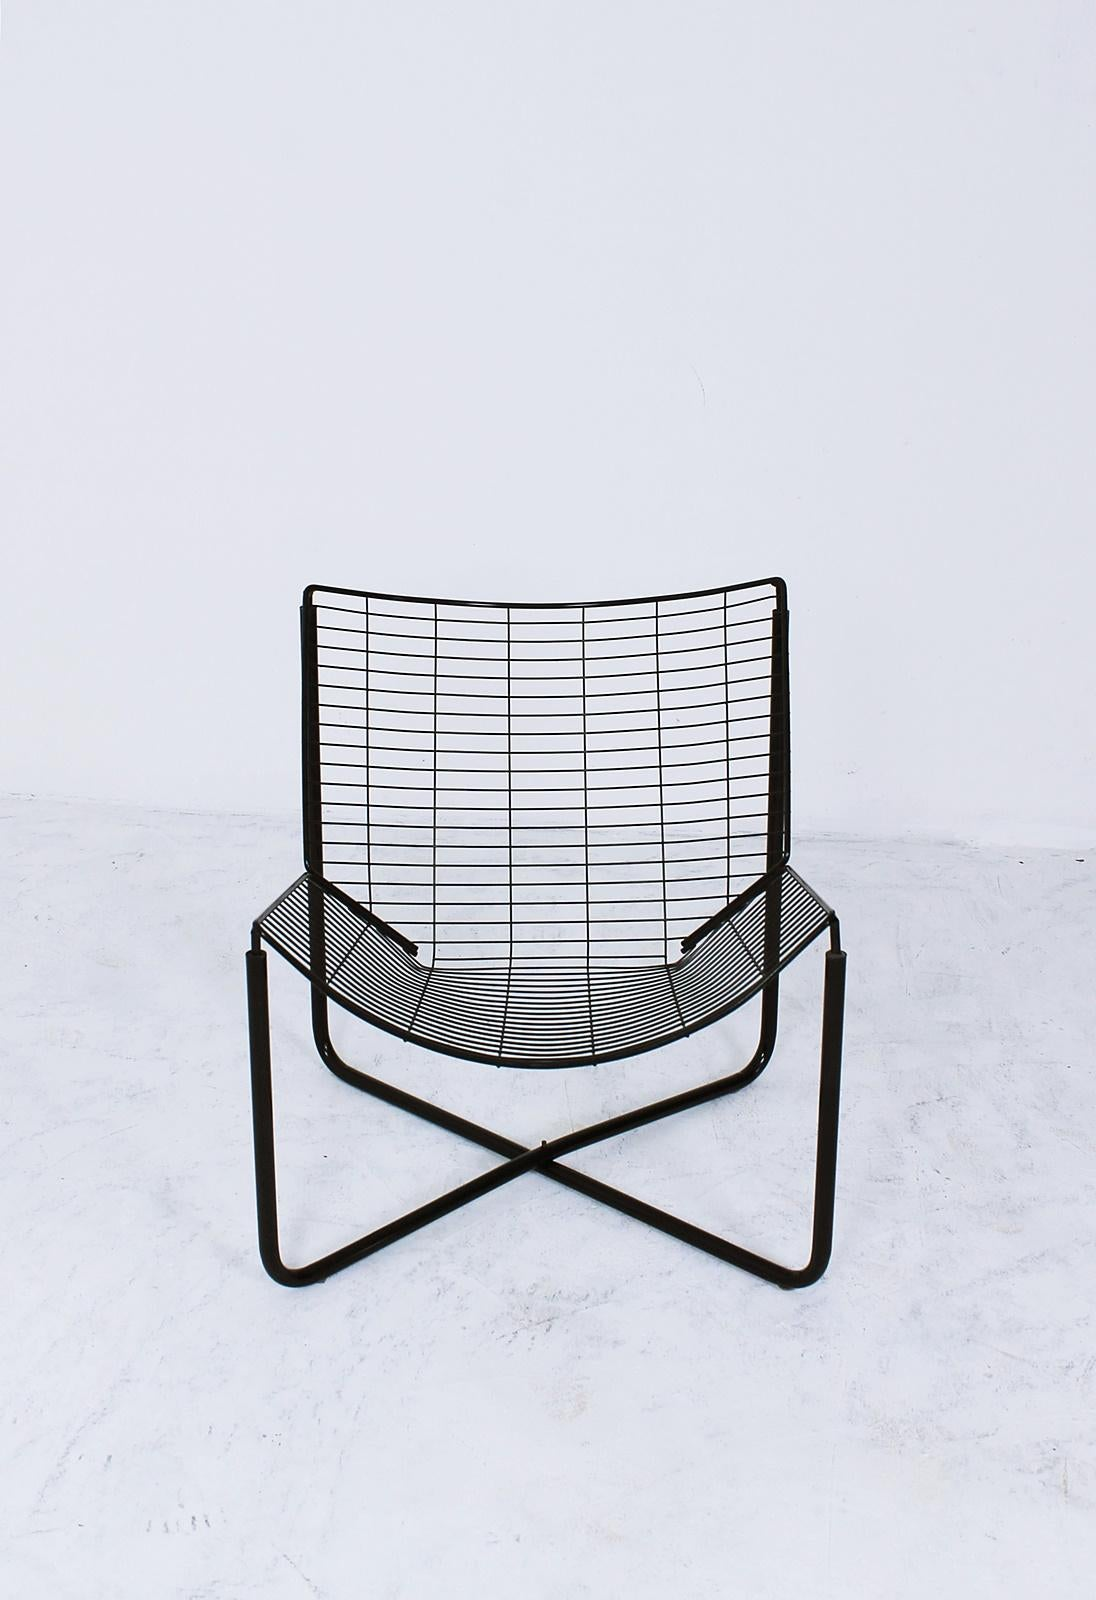 Ikea Black Chair Jarpen Wire Lounge Chair By Niels Gammelgaard For Ikea 1983